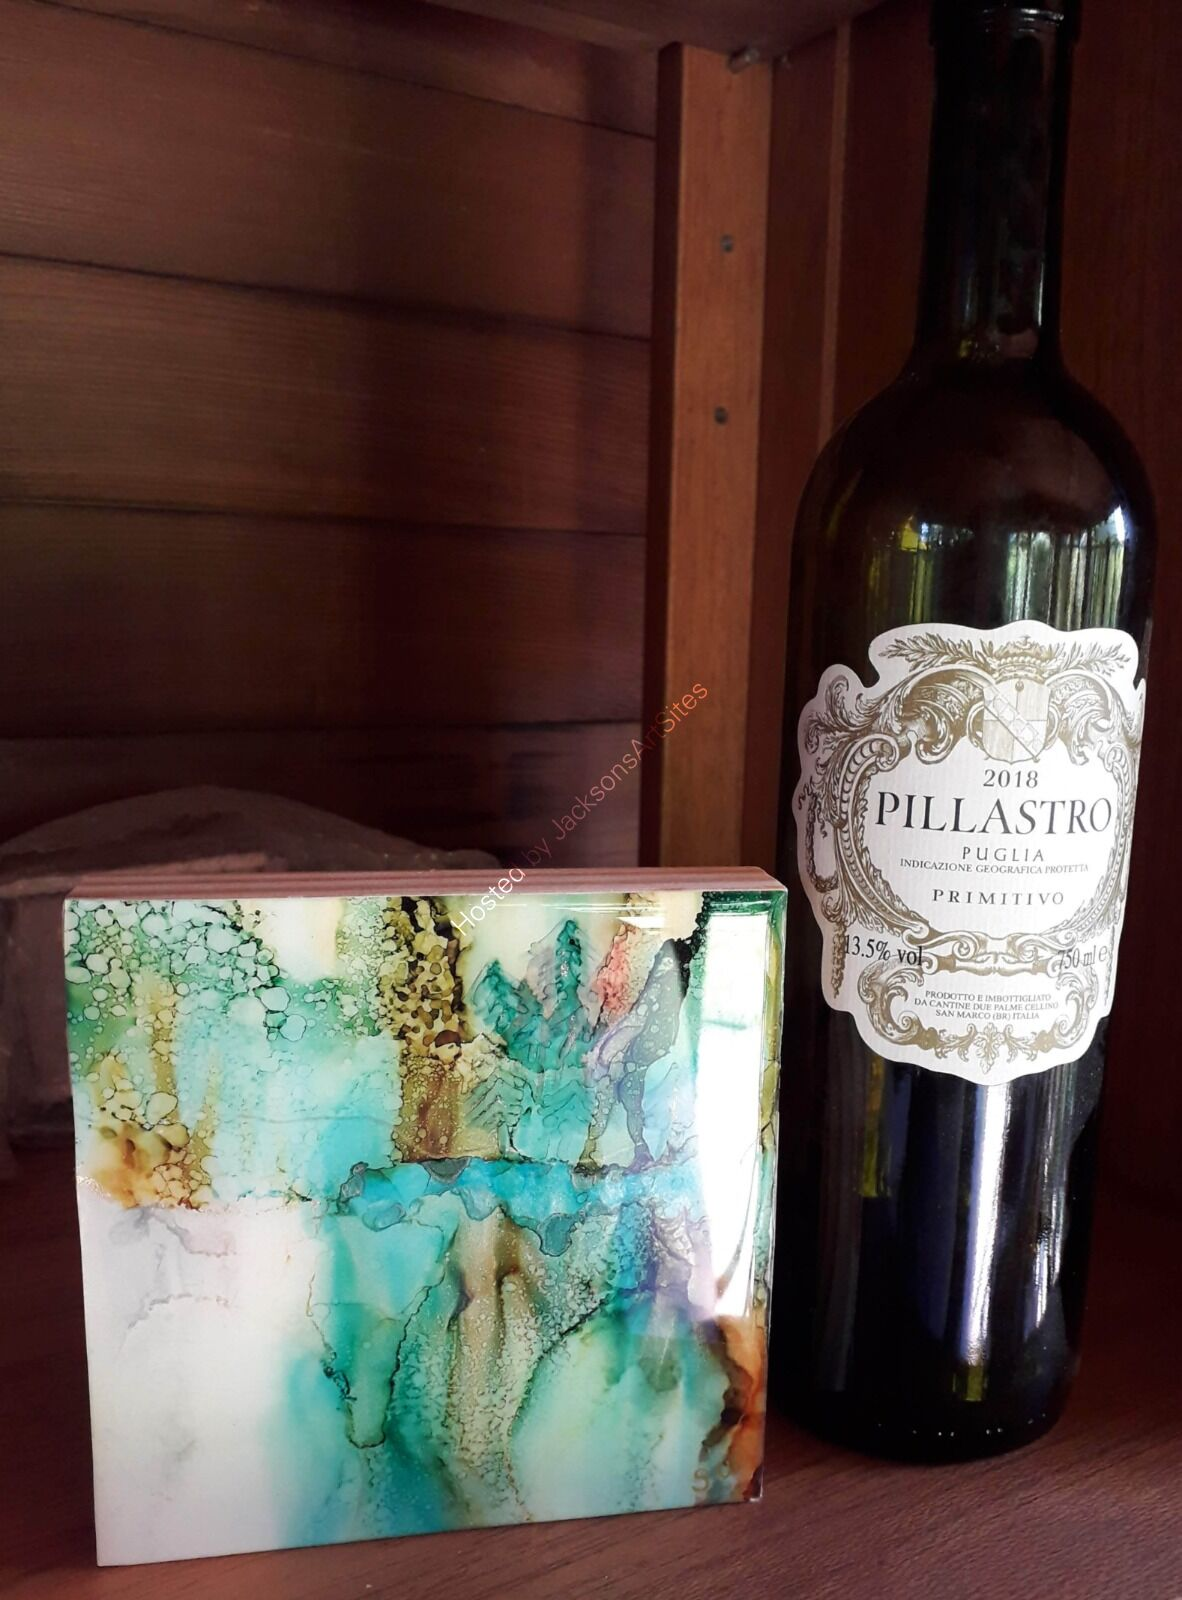 Green woods with wine